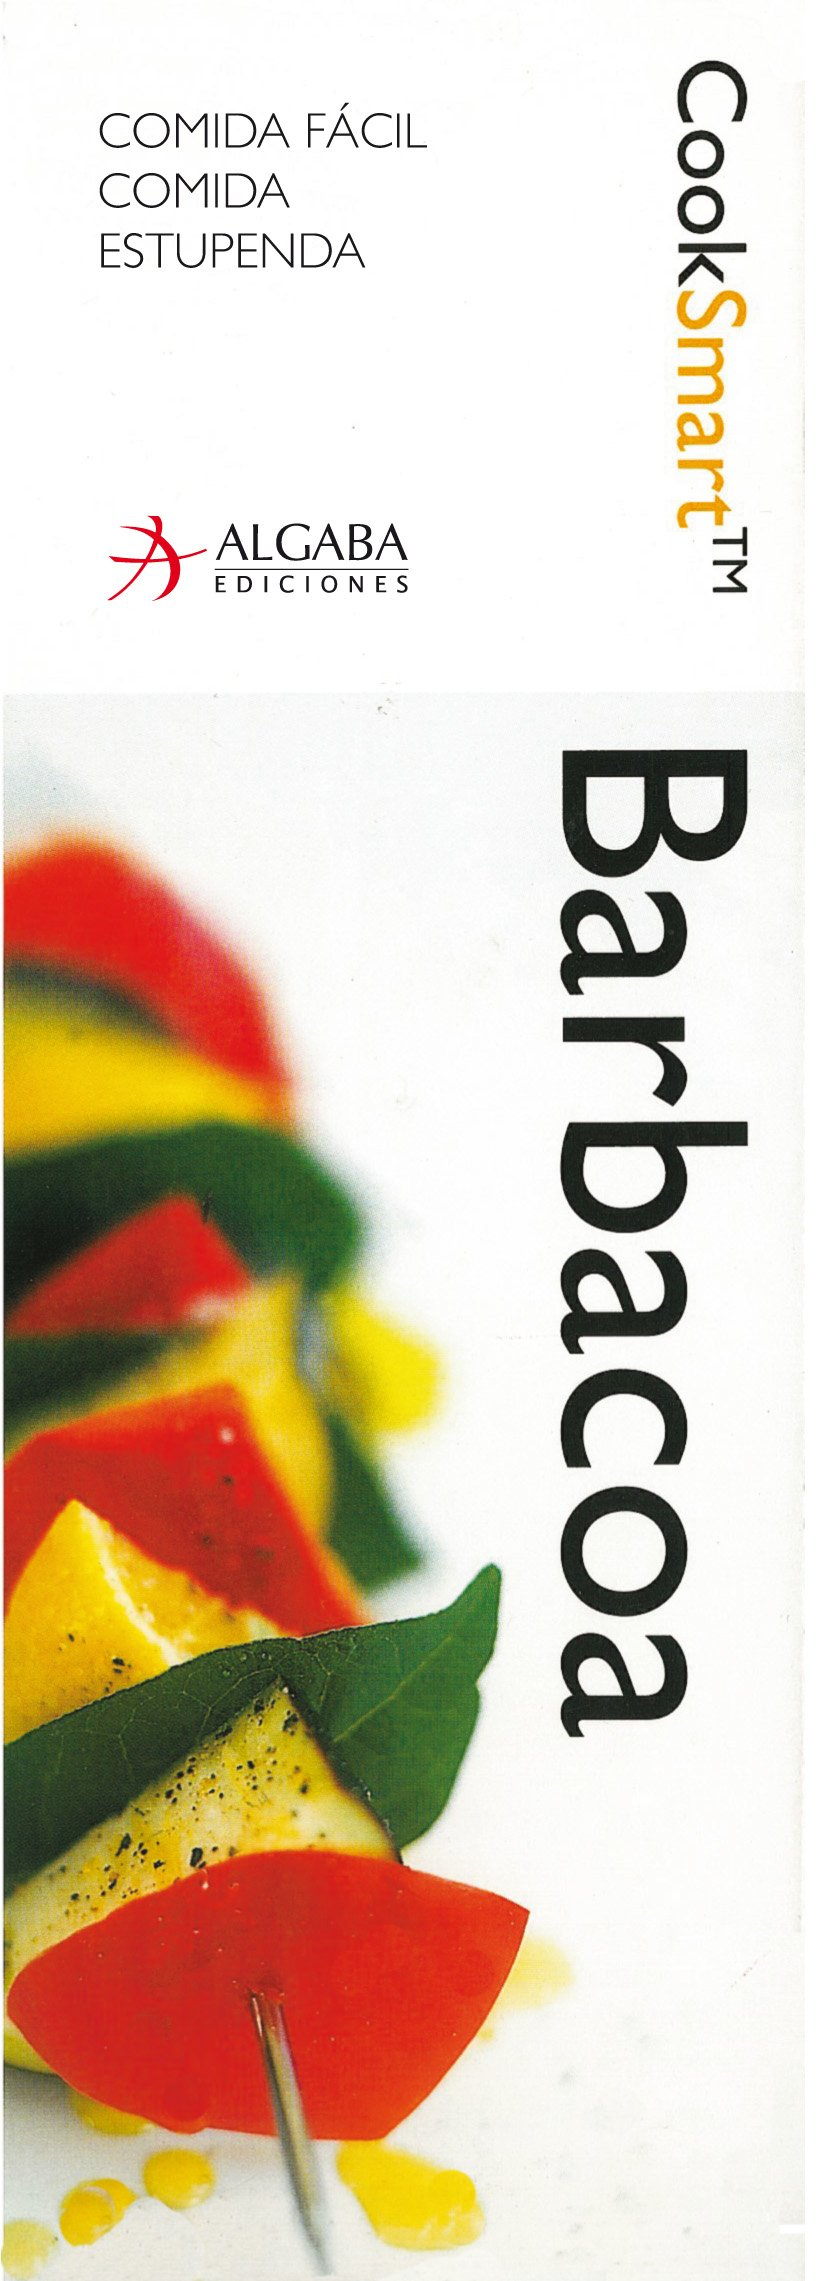 Barbacoa (Spanish Edition): Various Authors: 9788496107373: Amazon.com: Books